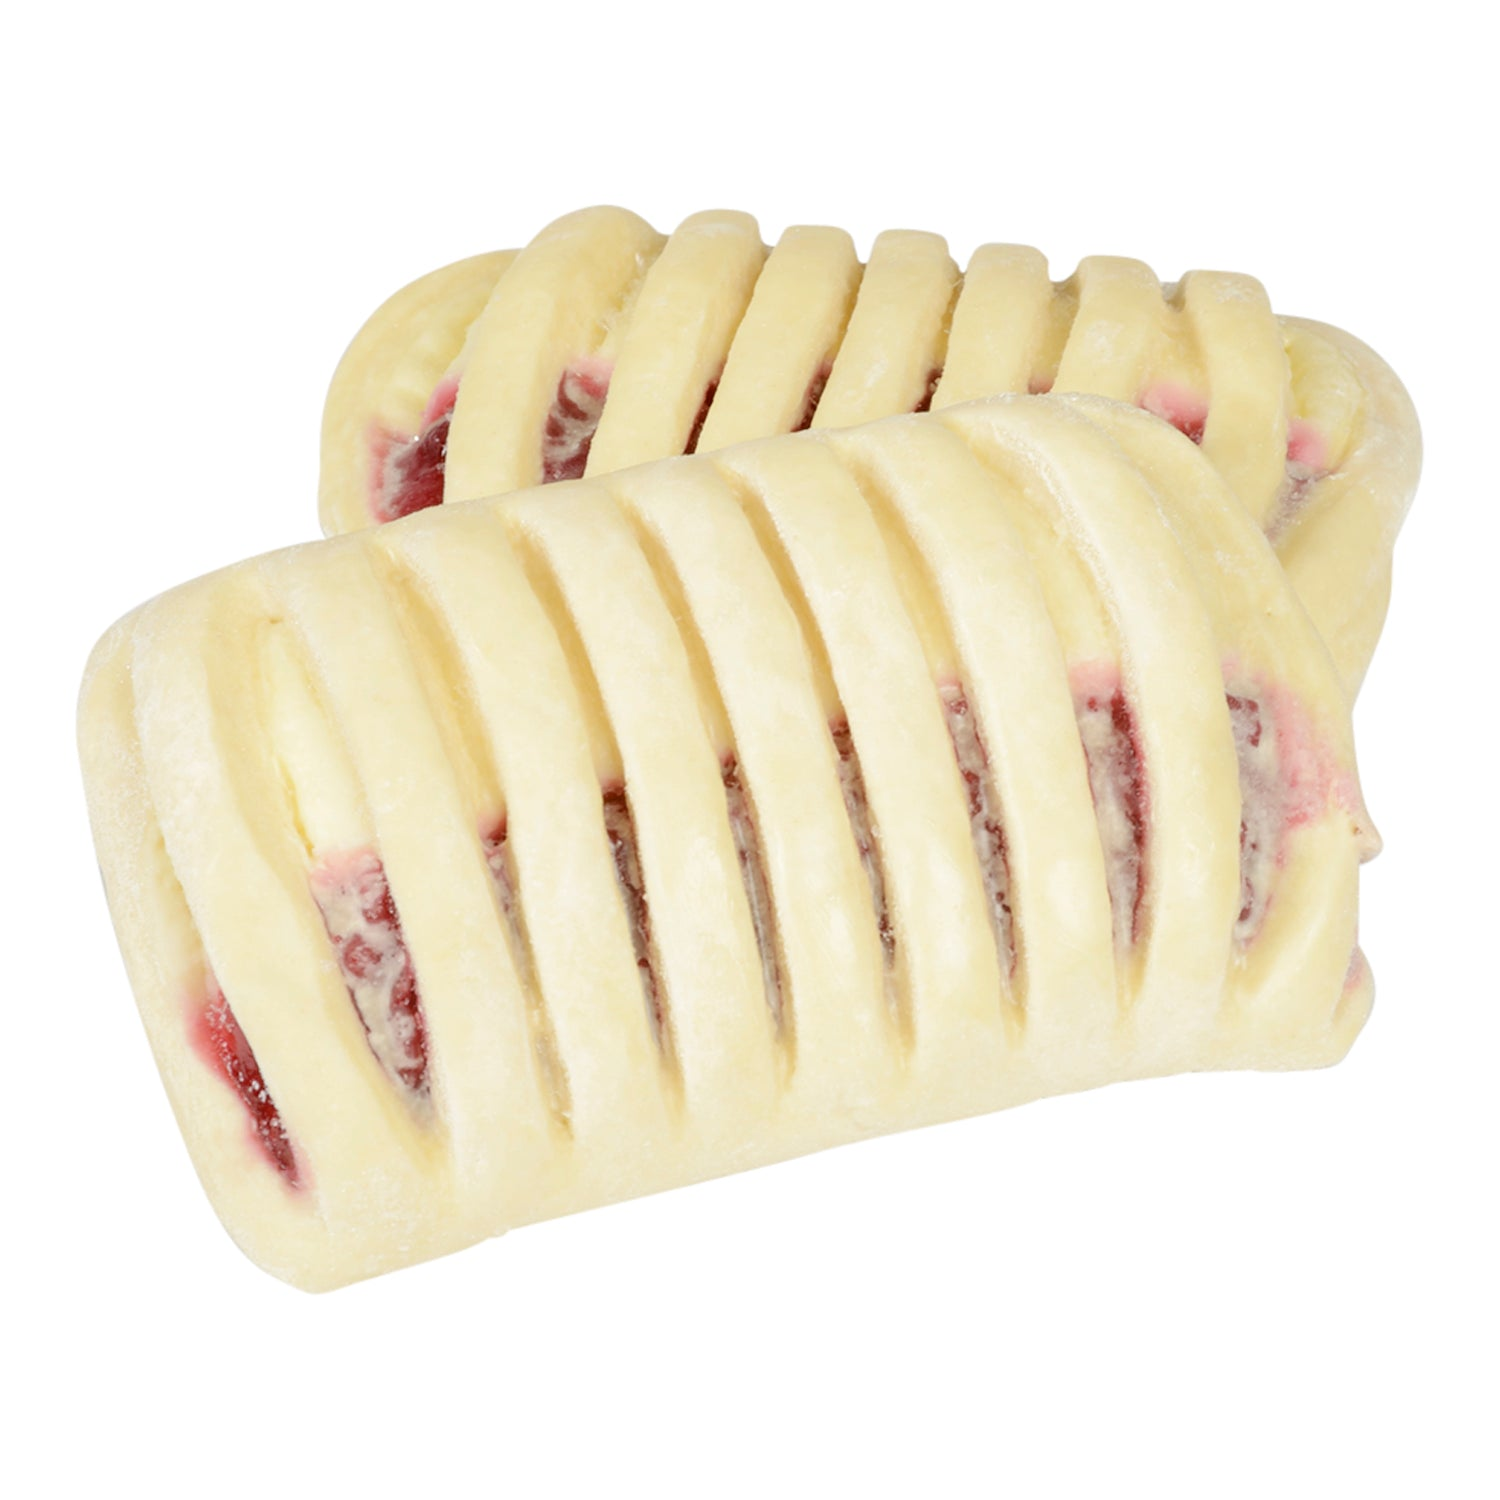 Bridor Cherry Greek Yogurt Danish 115 g - 60 Pack [$1.50/each]